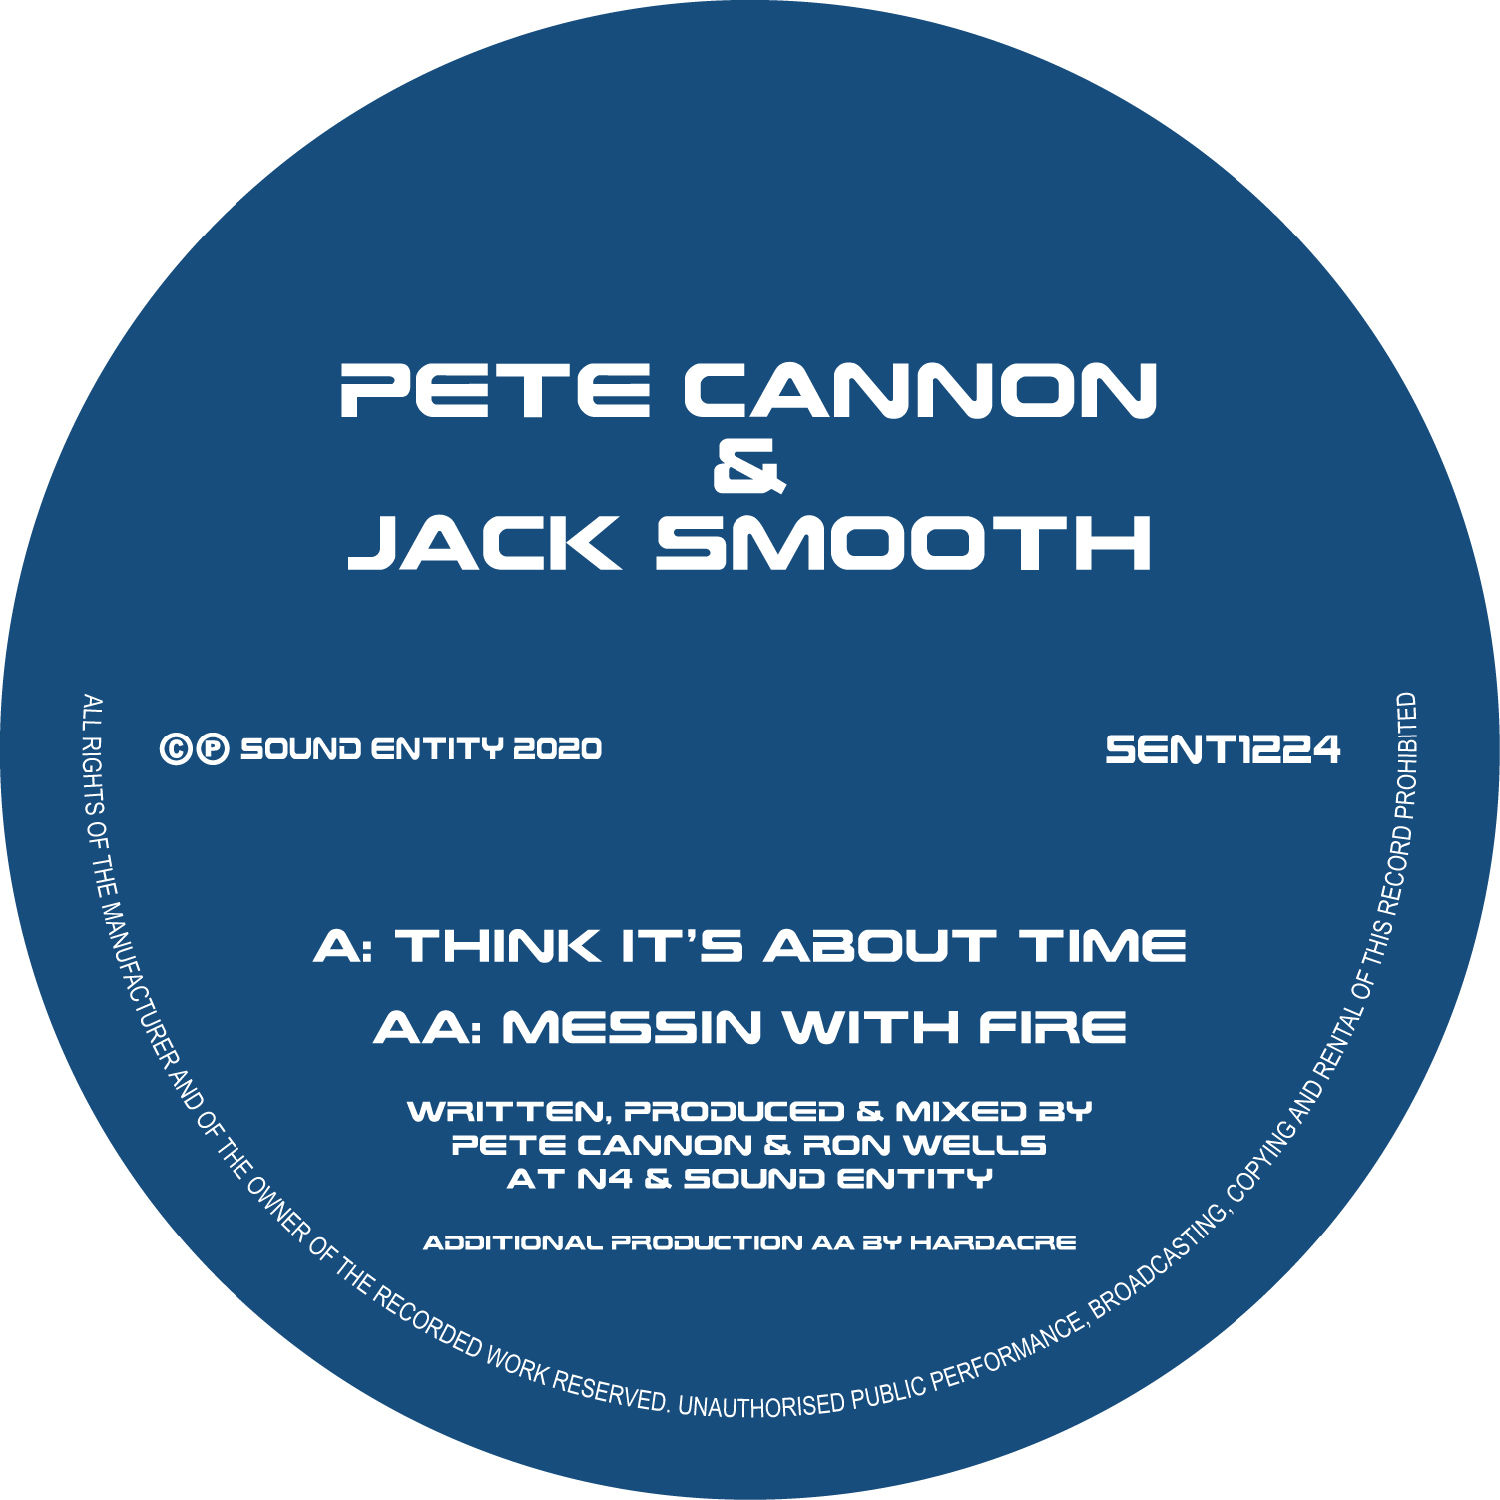 "[SENT1224] Pete Cannon & Jack Smooth - Think Its ABout Time EP (12"" Vinyl + Digital)"